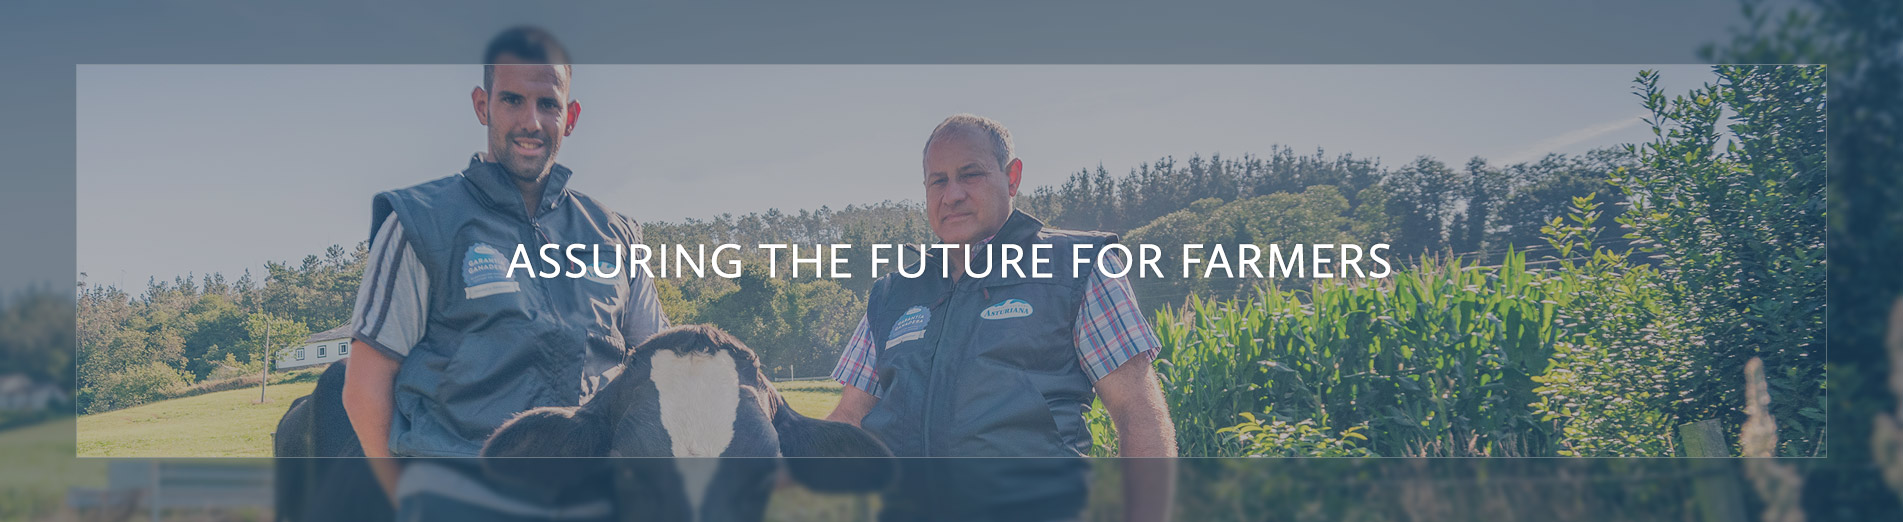 Assuring the future for farmers